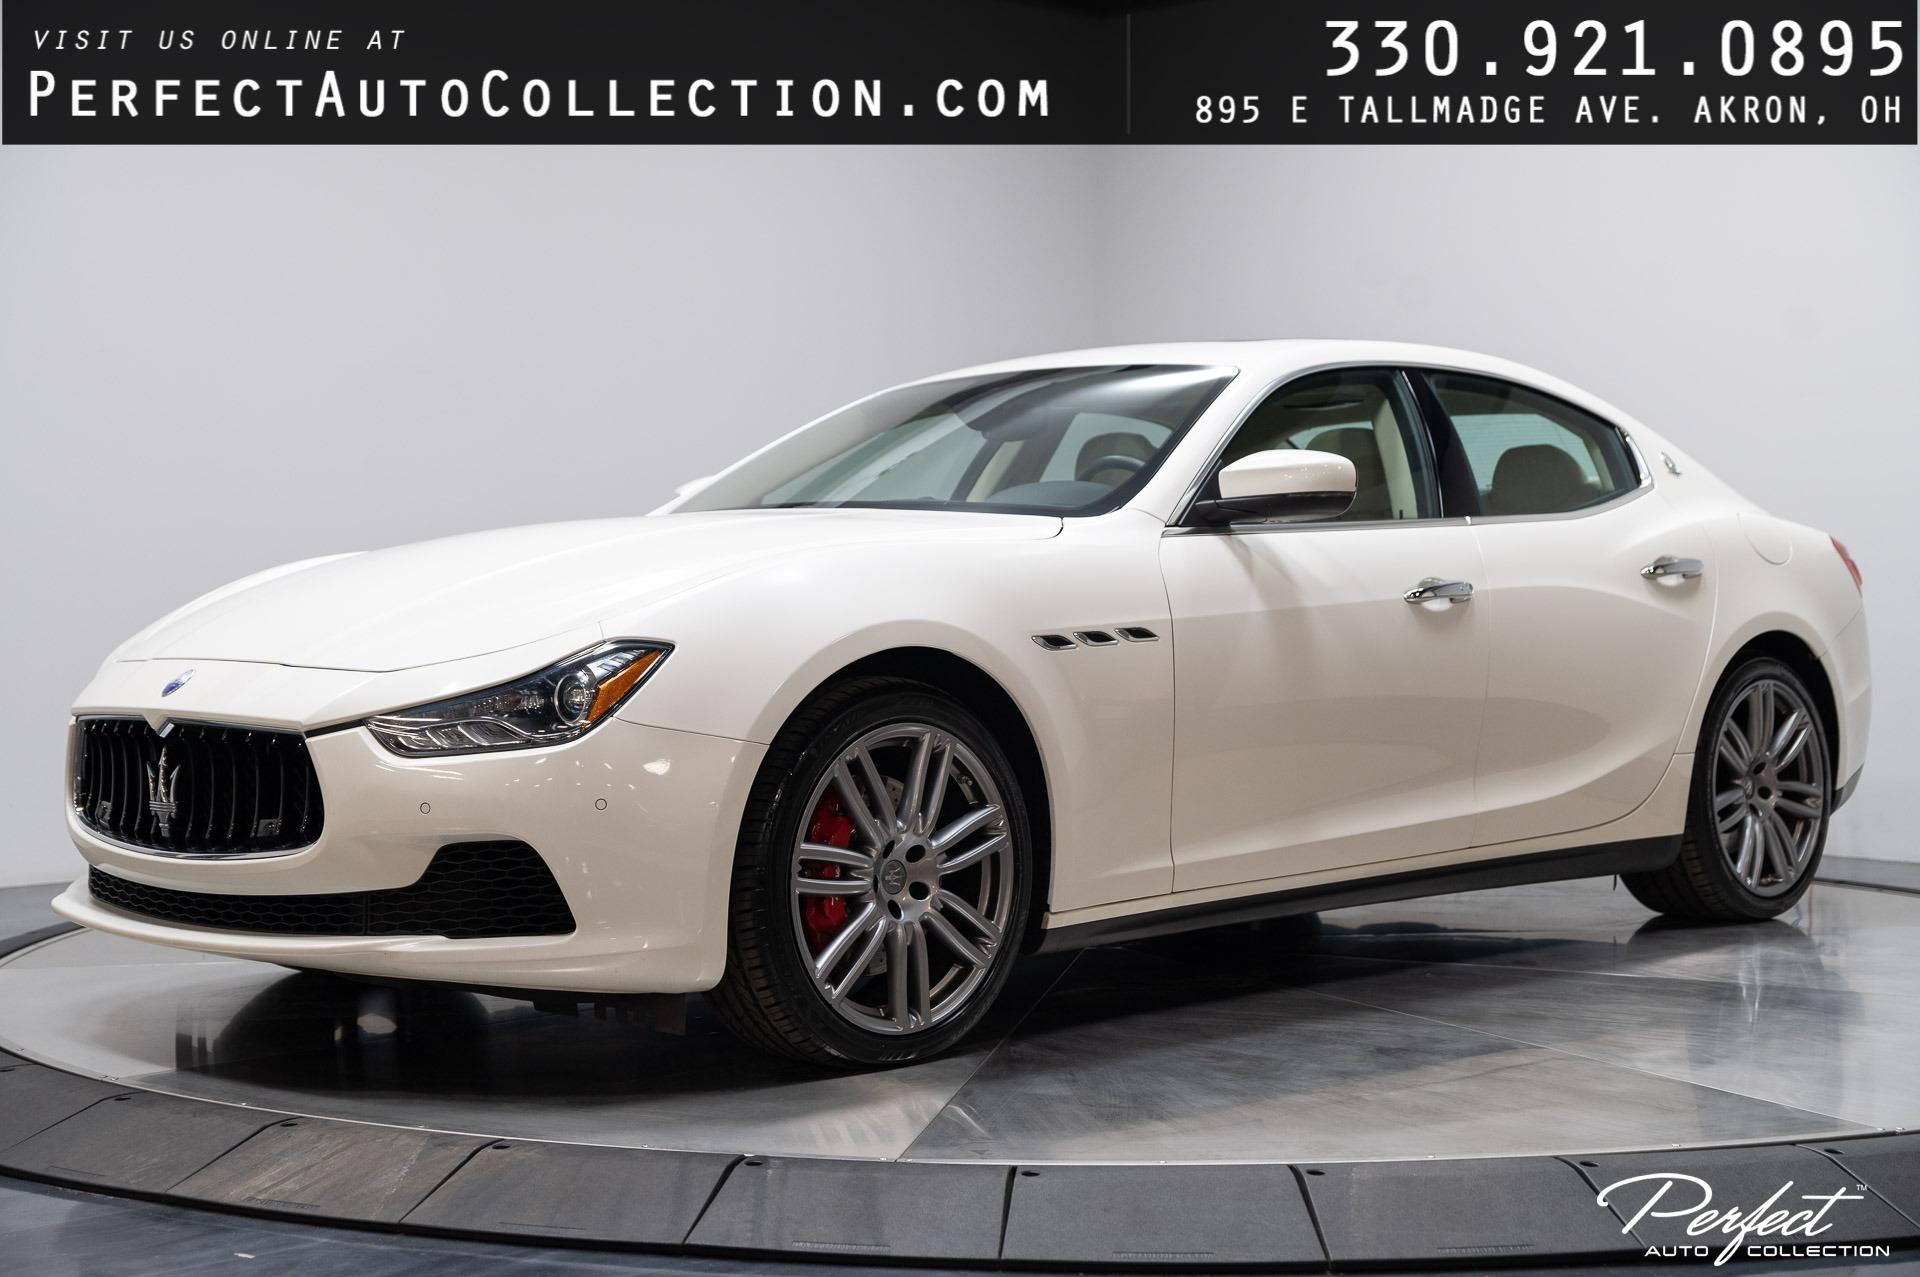 Used 2017 Maserati Ghibli S Q4 for sale $39,995 at Perfect Auto Collection in Akron OH 44310 1